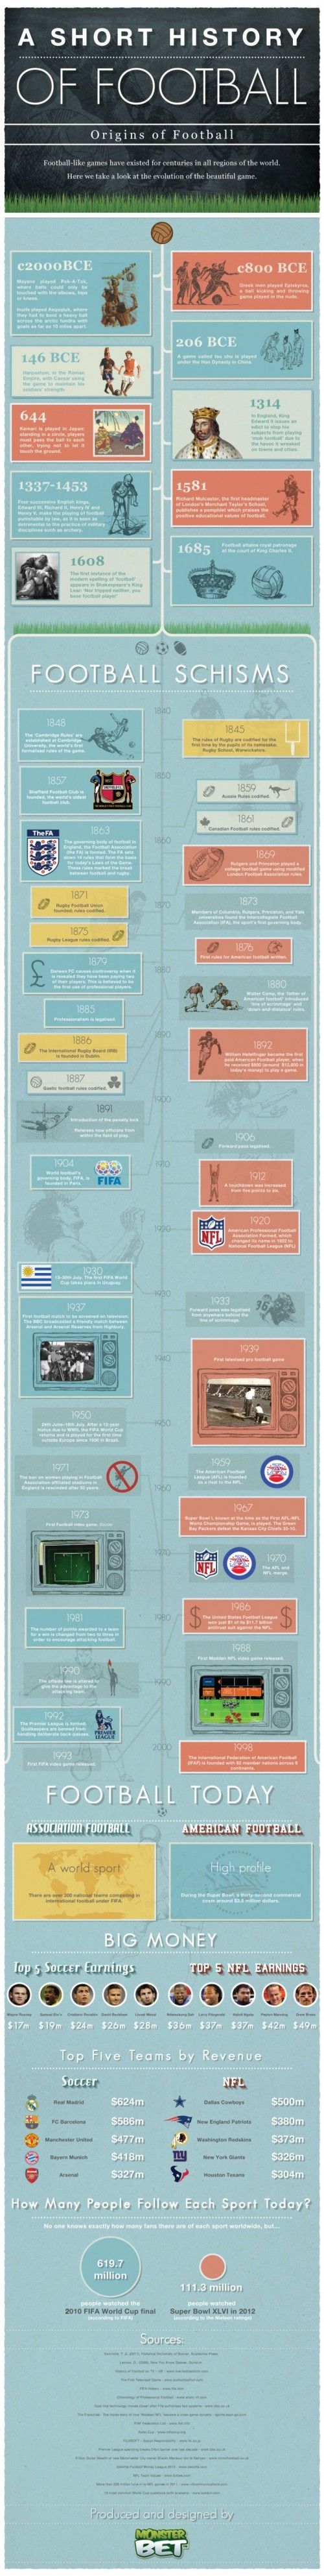 A Brief History of Soccer